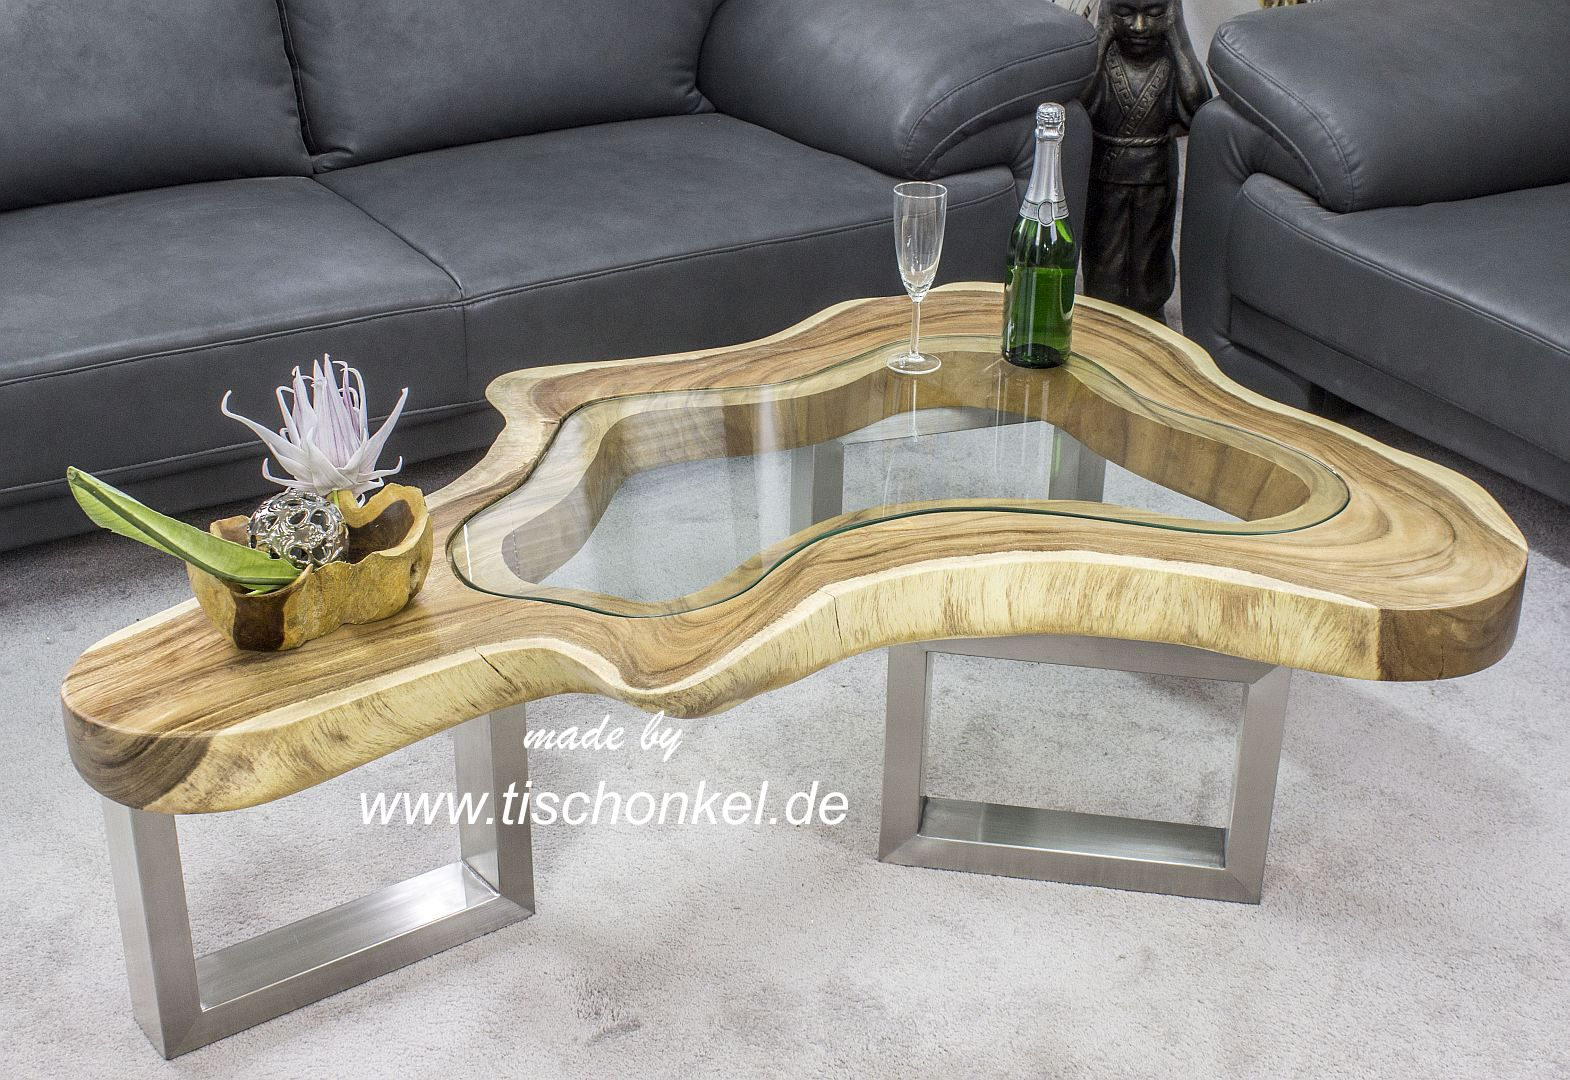 couchtisch clash aus einem baumstamm mit glas der tischonkel der tischonkel. Black Bedroom Furniture Sets. Home Design Ideas